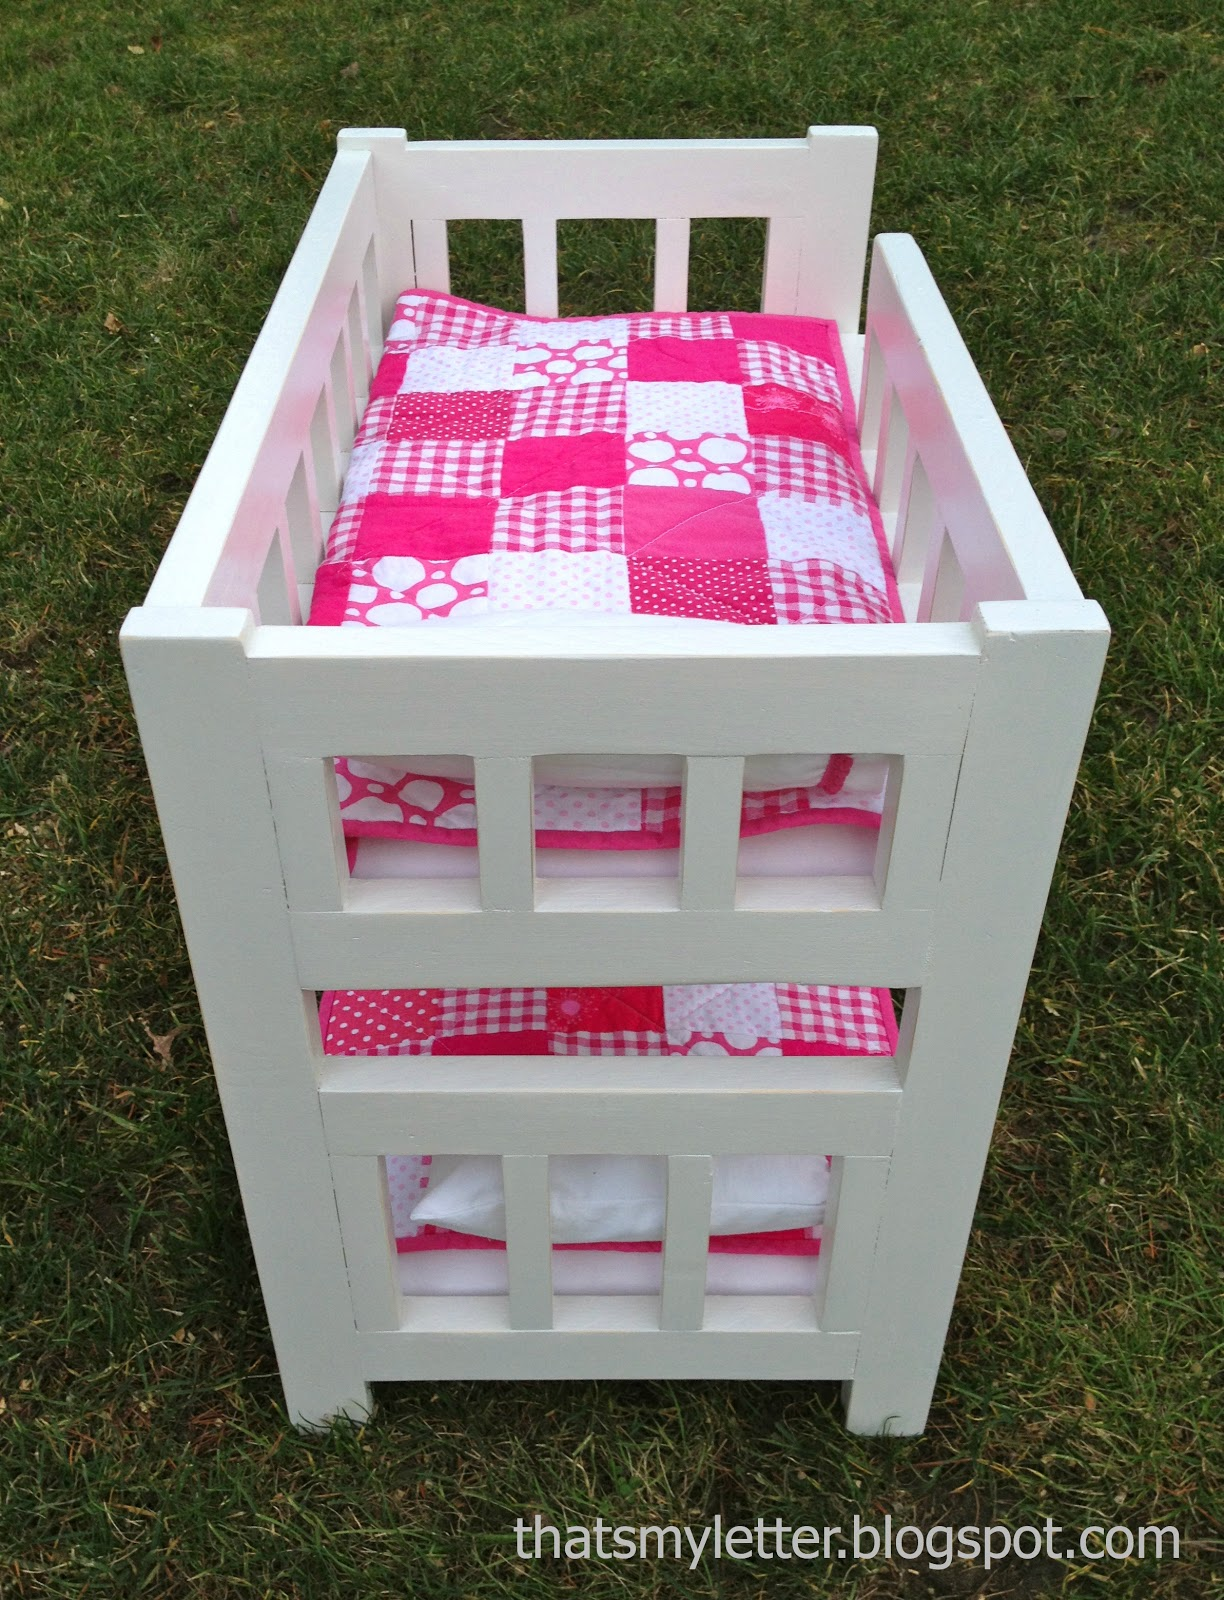 Diy Camp Bunk Bed For Dolls Jaime Costiglio